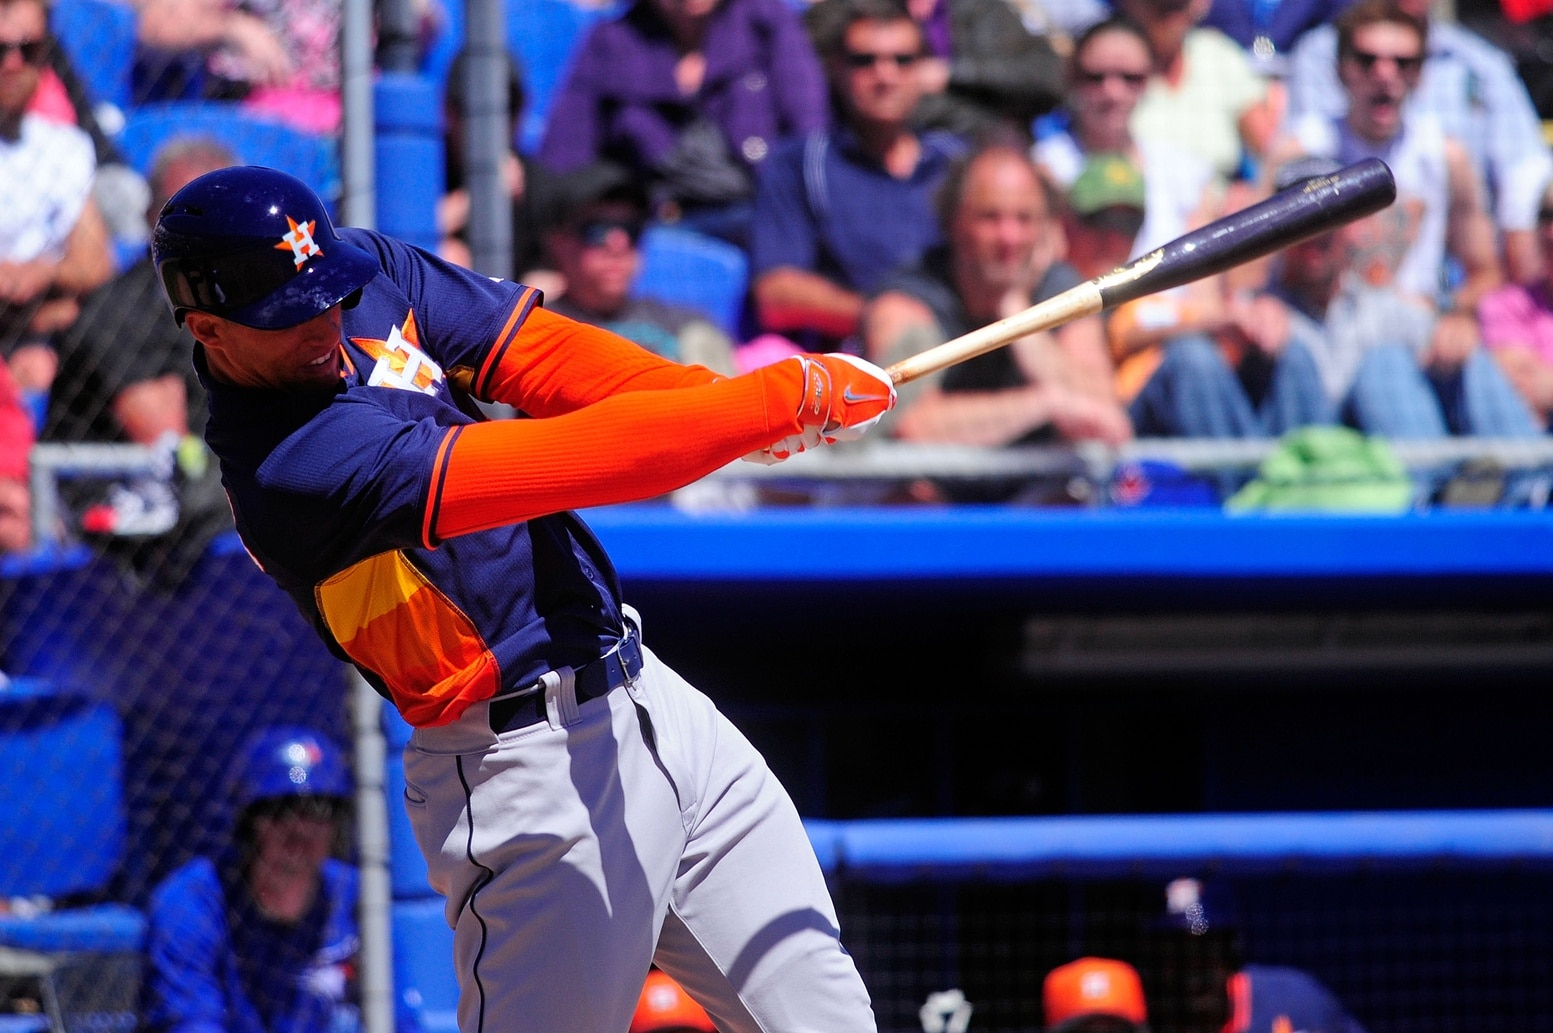 George Springer takes a hack in a Spring Training game. Photo from